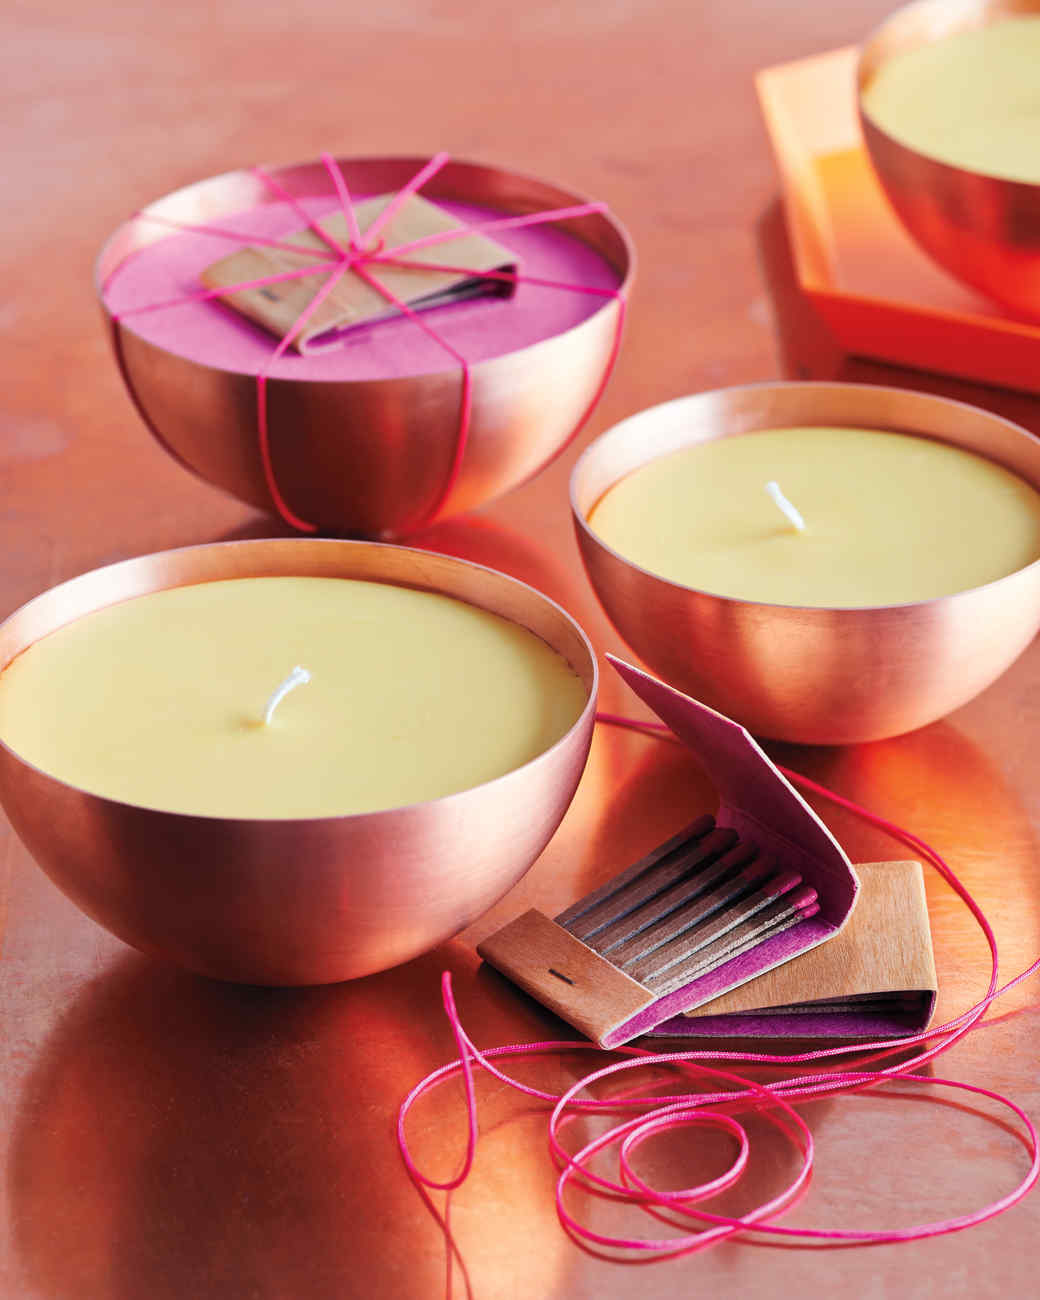 Citrus-and-Spice-Scented Candles